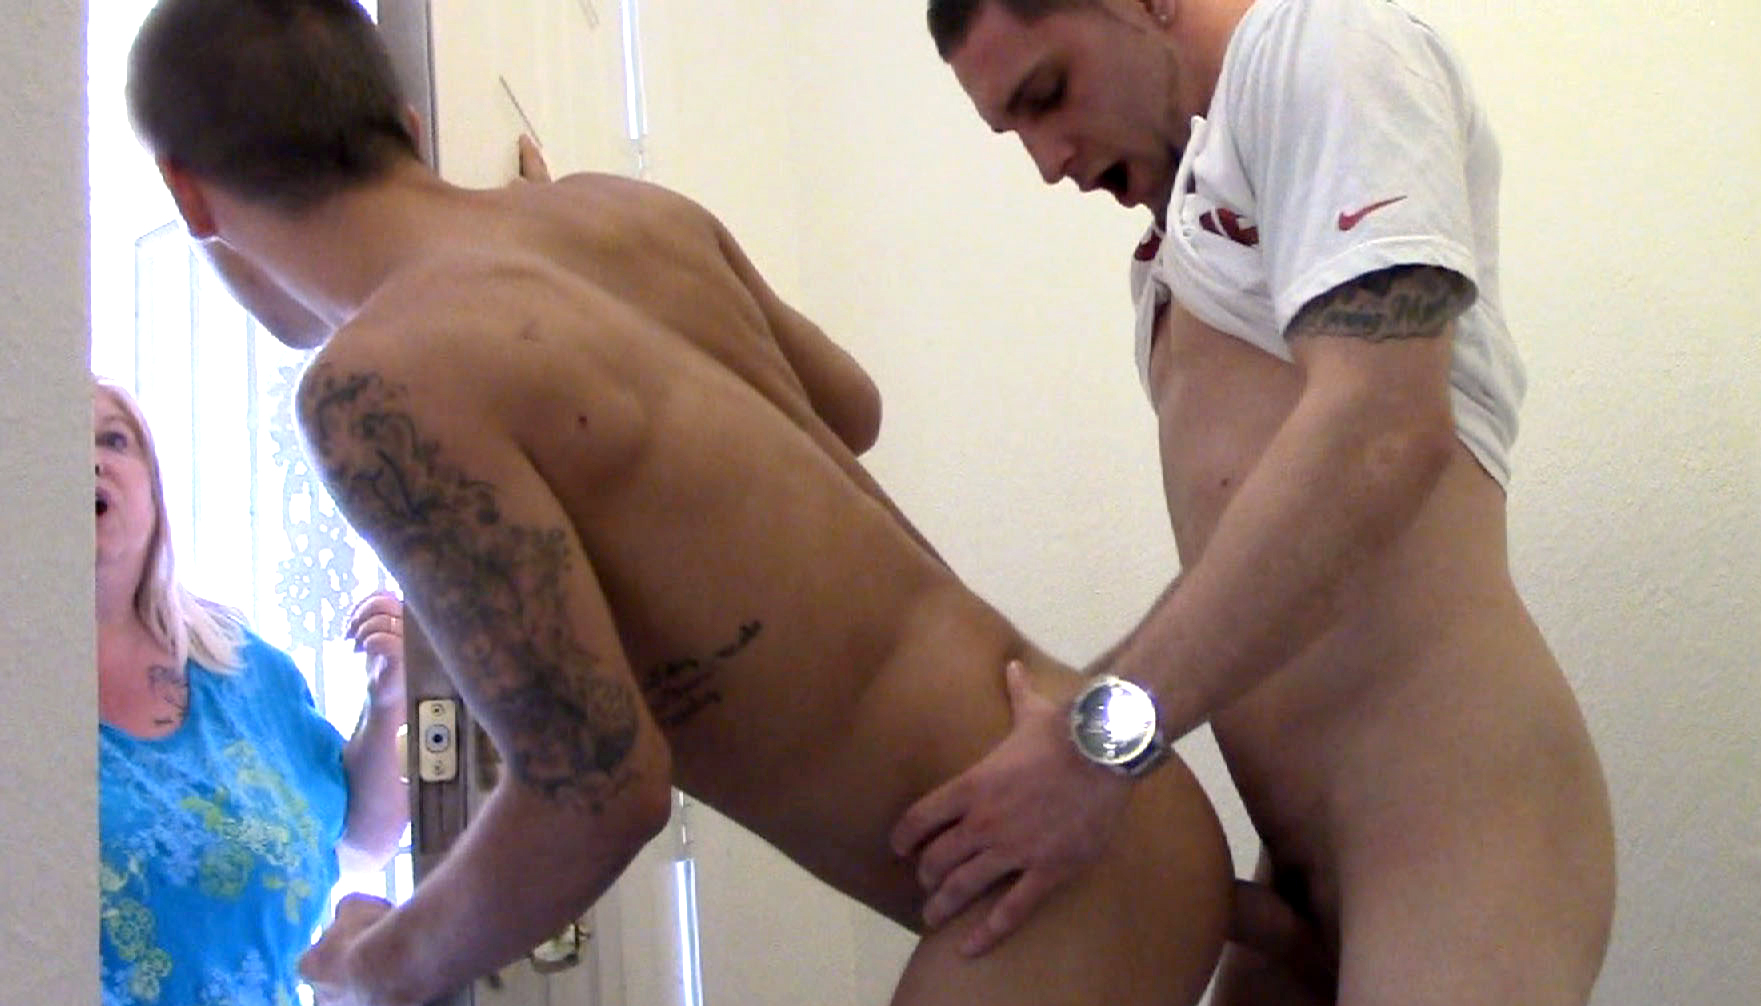 Trent Ferris answers the door during a gay bareback orgy on porn site Sketchy Sex